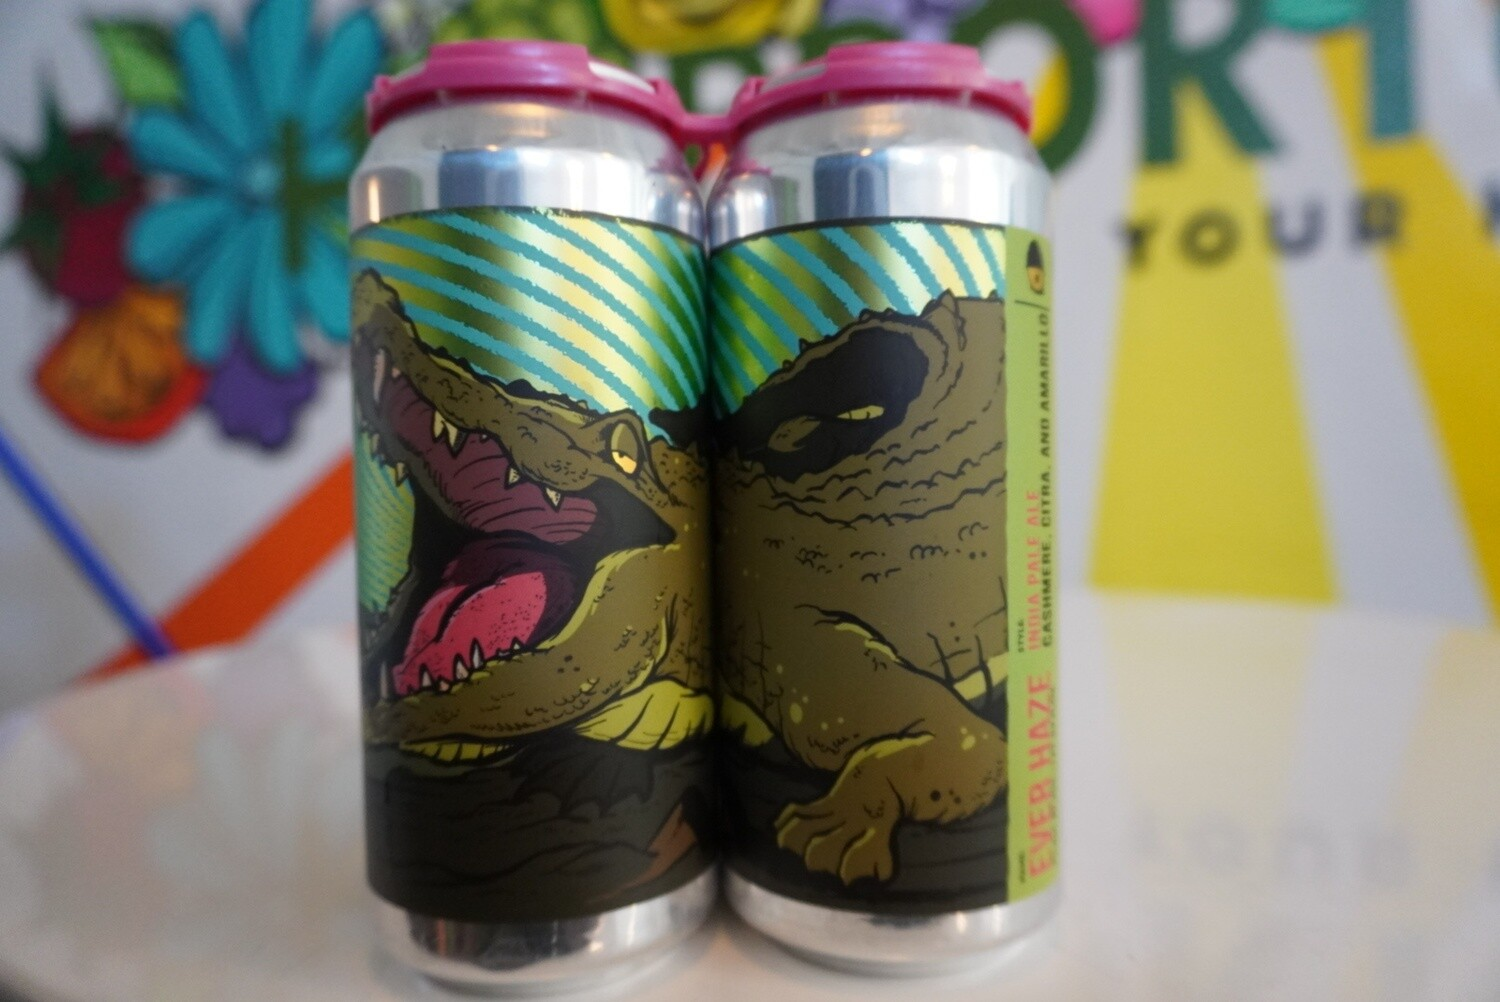 Tripping Animals - Ever Haze - New England IPA - 7% ABV - 4 Pack